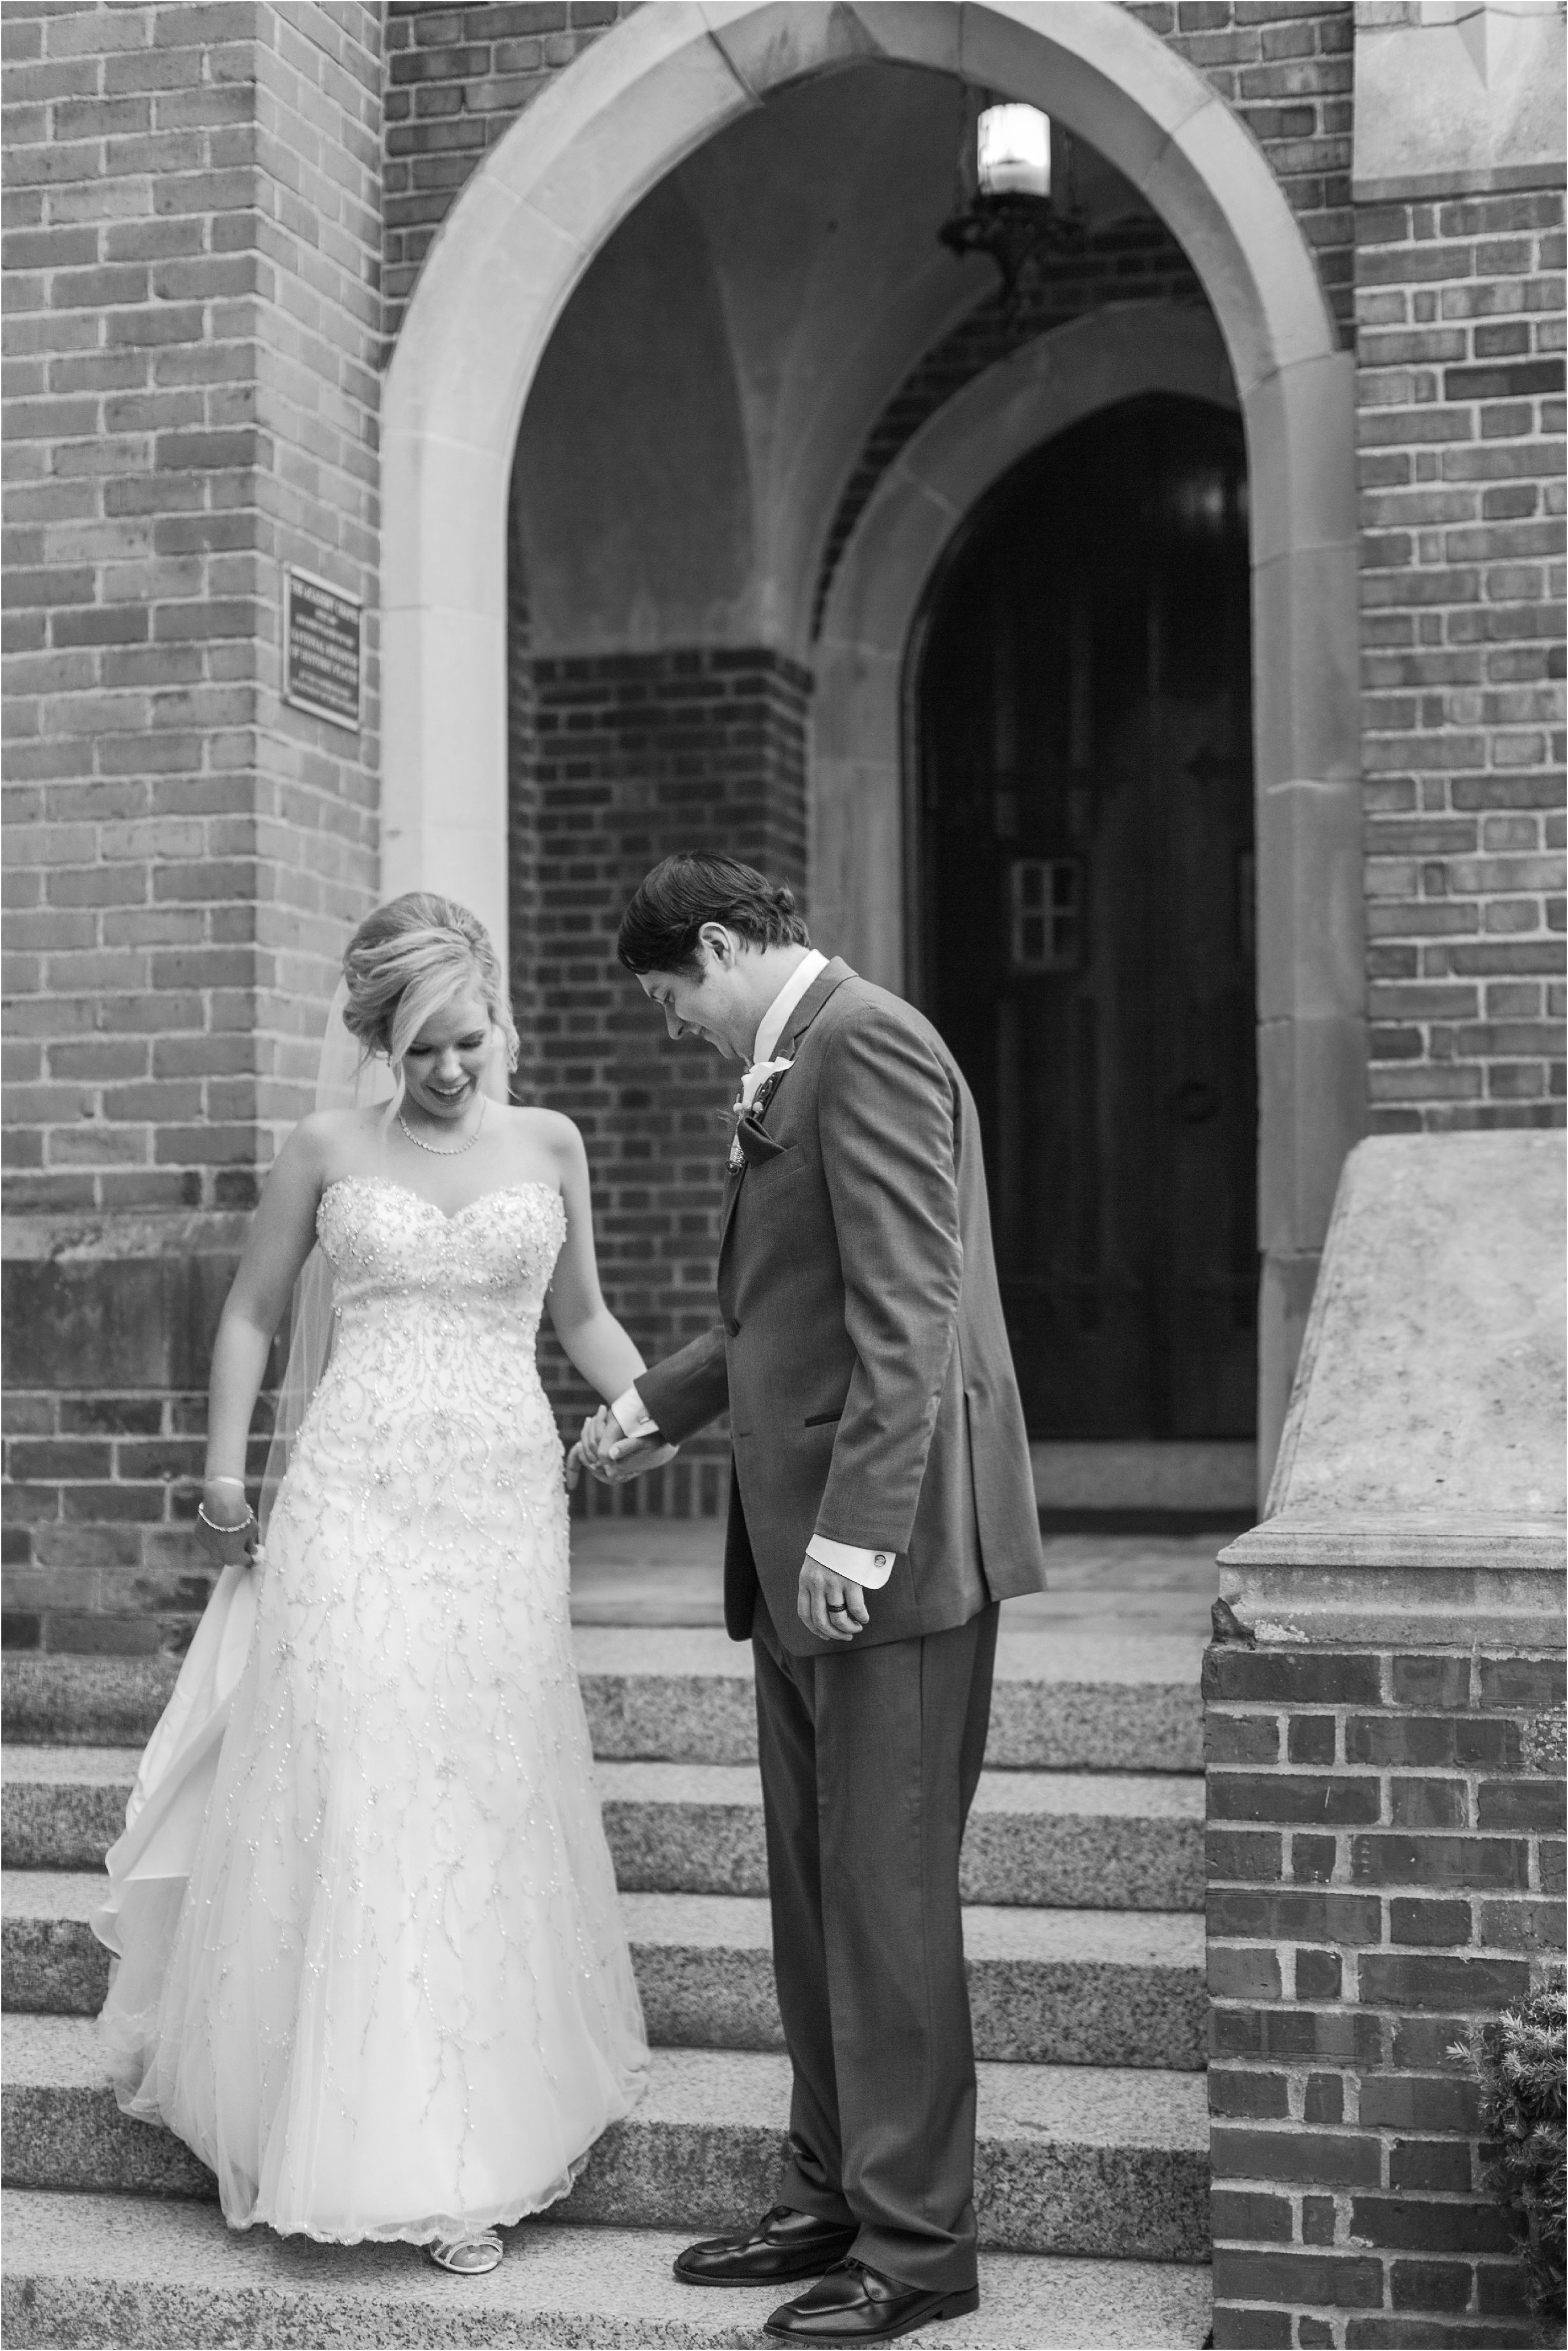 romantic-timeless-candid-wedding-photos-at-grosse-pointe-academy-in-grosse-pointe-mi-by-courtney-carolyn-photography_0014.jpg